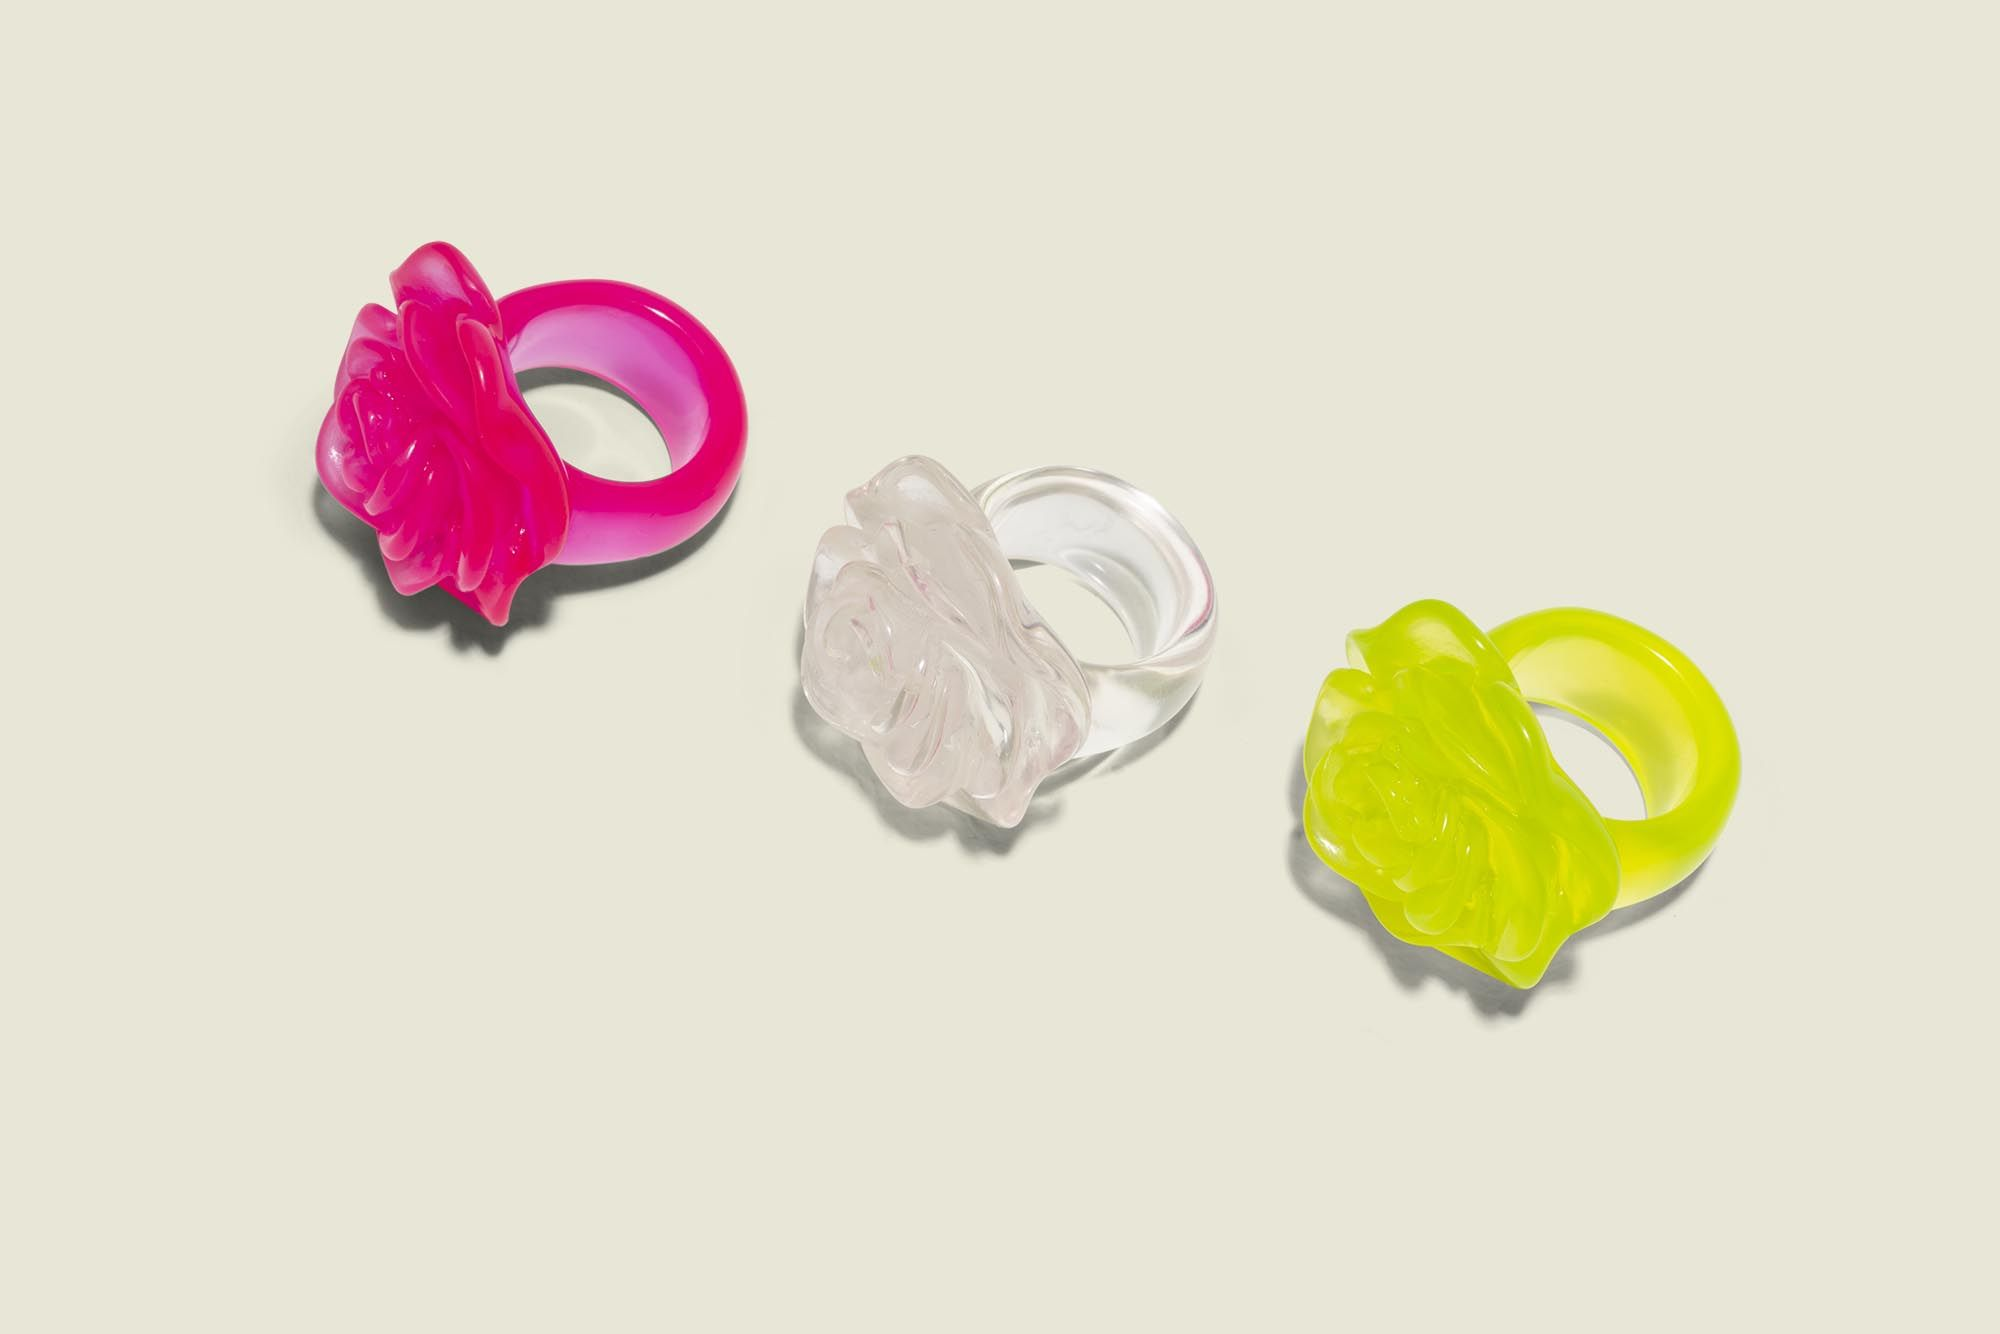 Floral shaped rings